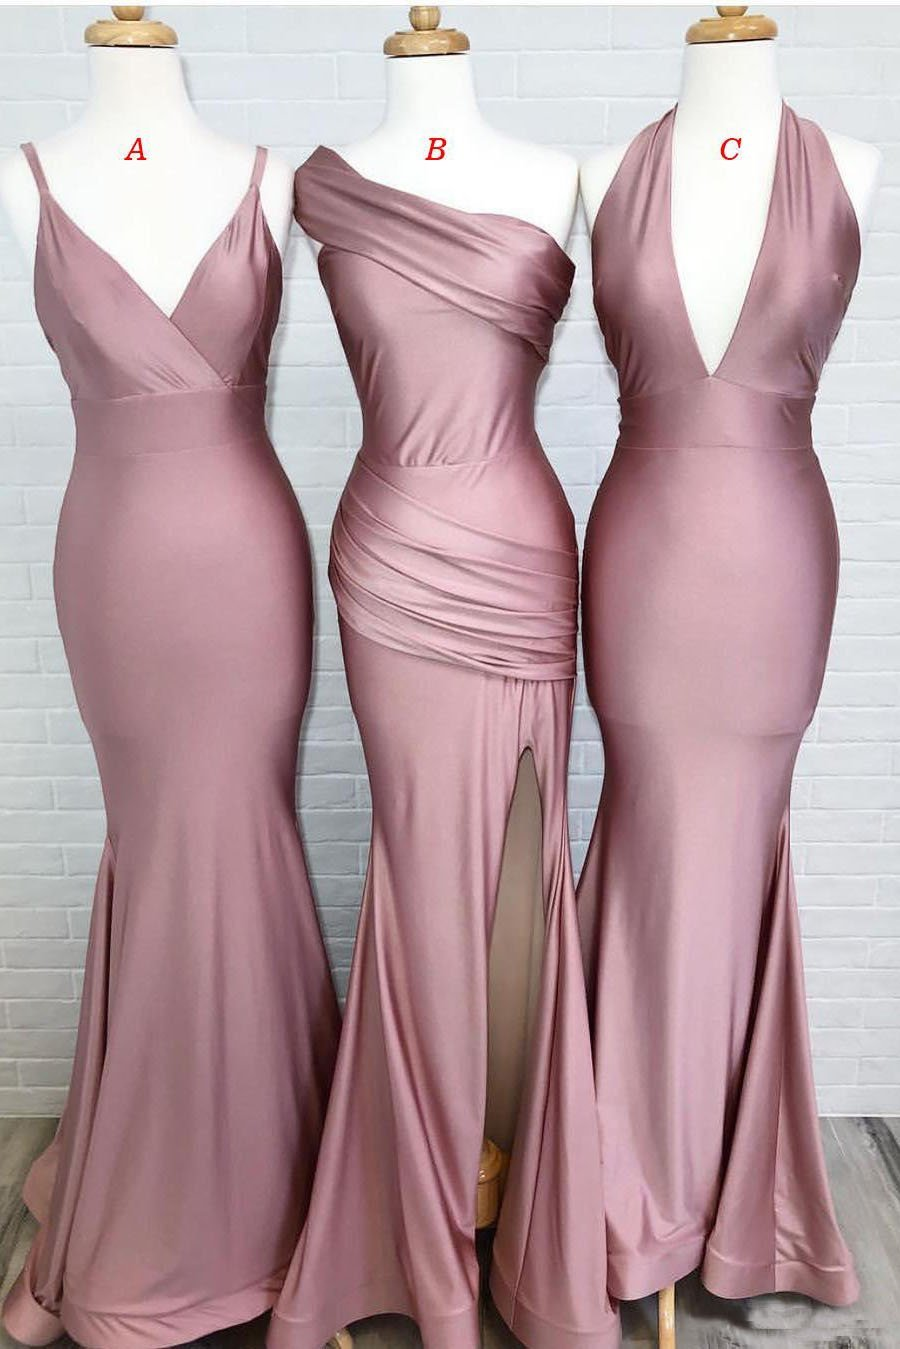 Dusty Rose Mermaid V Neck Split Side Long Evening Gowns Bridesmaid Dresses RS987